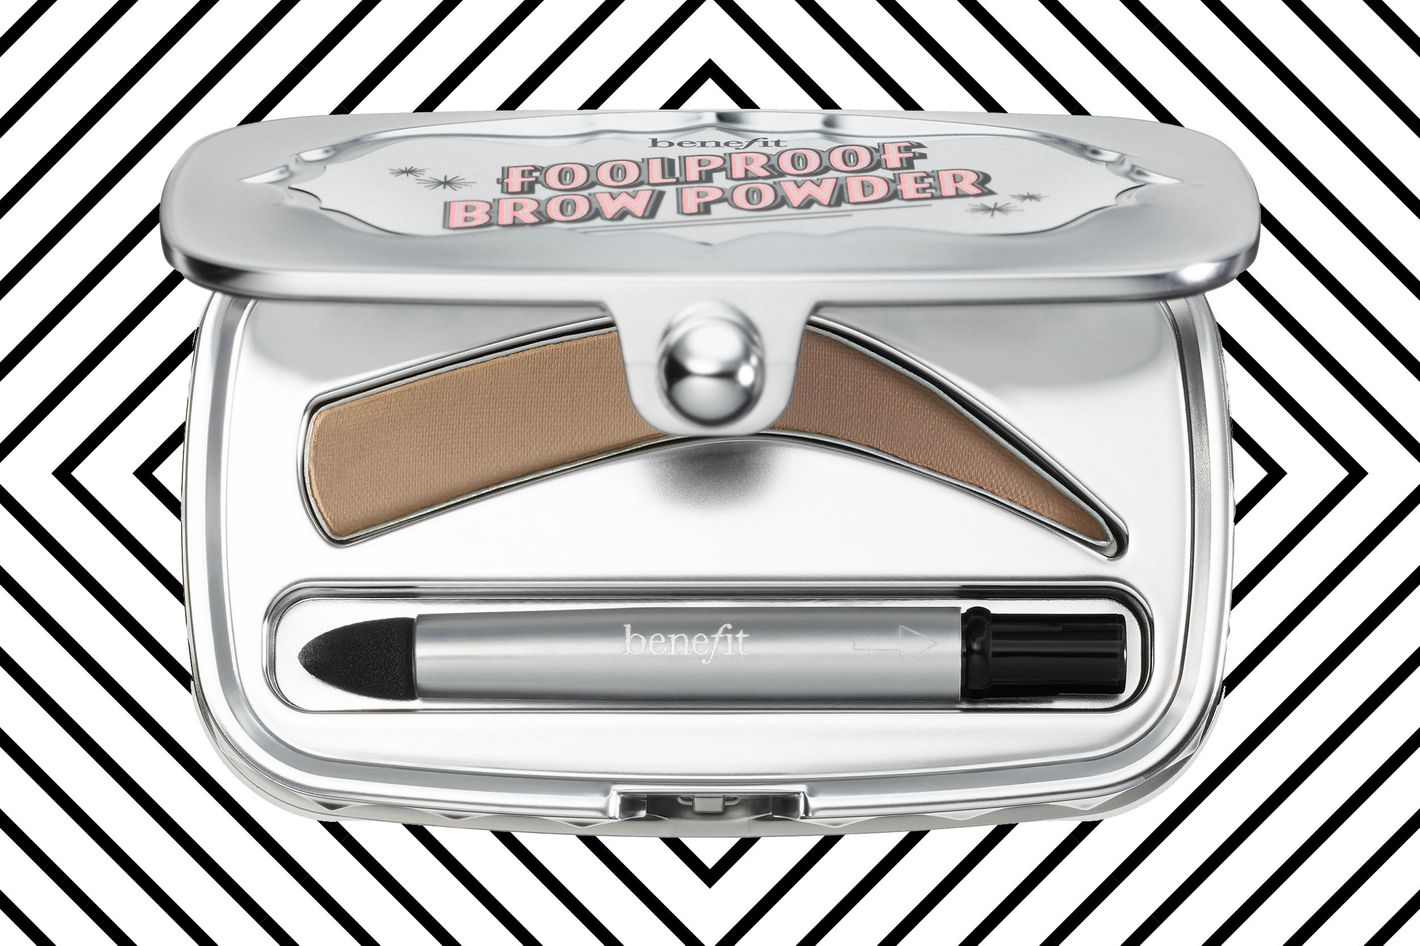 Benefit Foolproof Brow Powder.